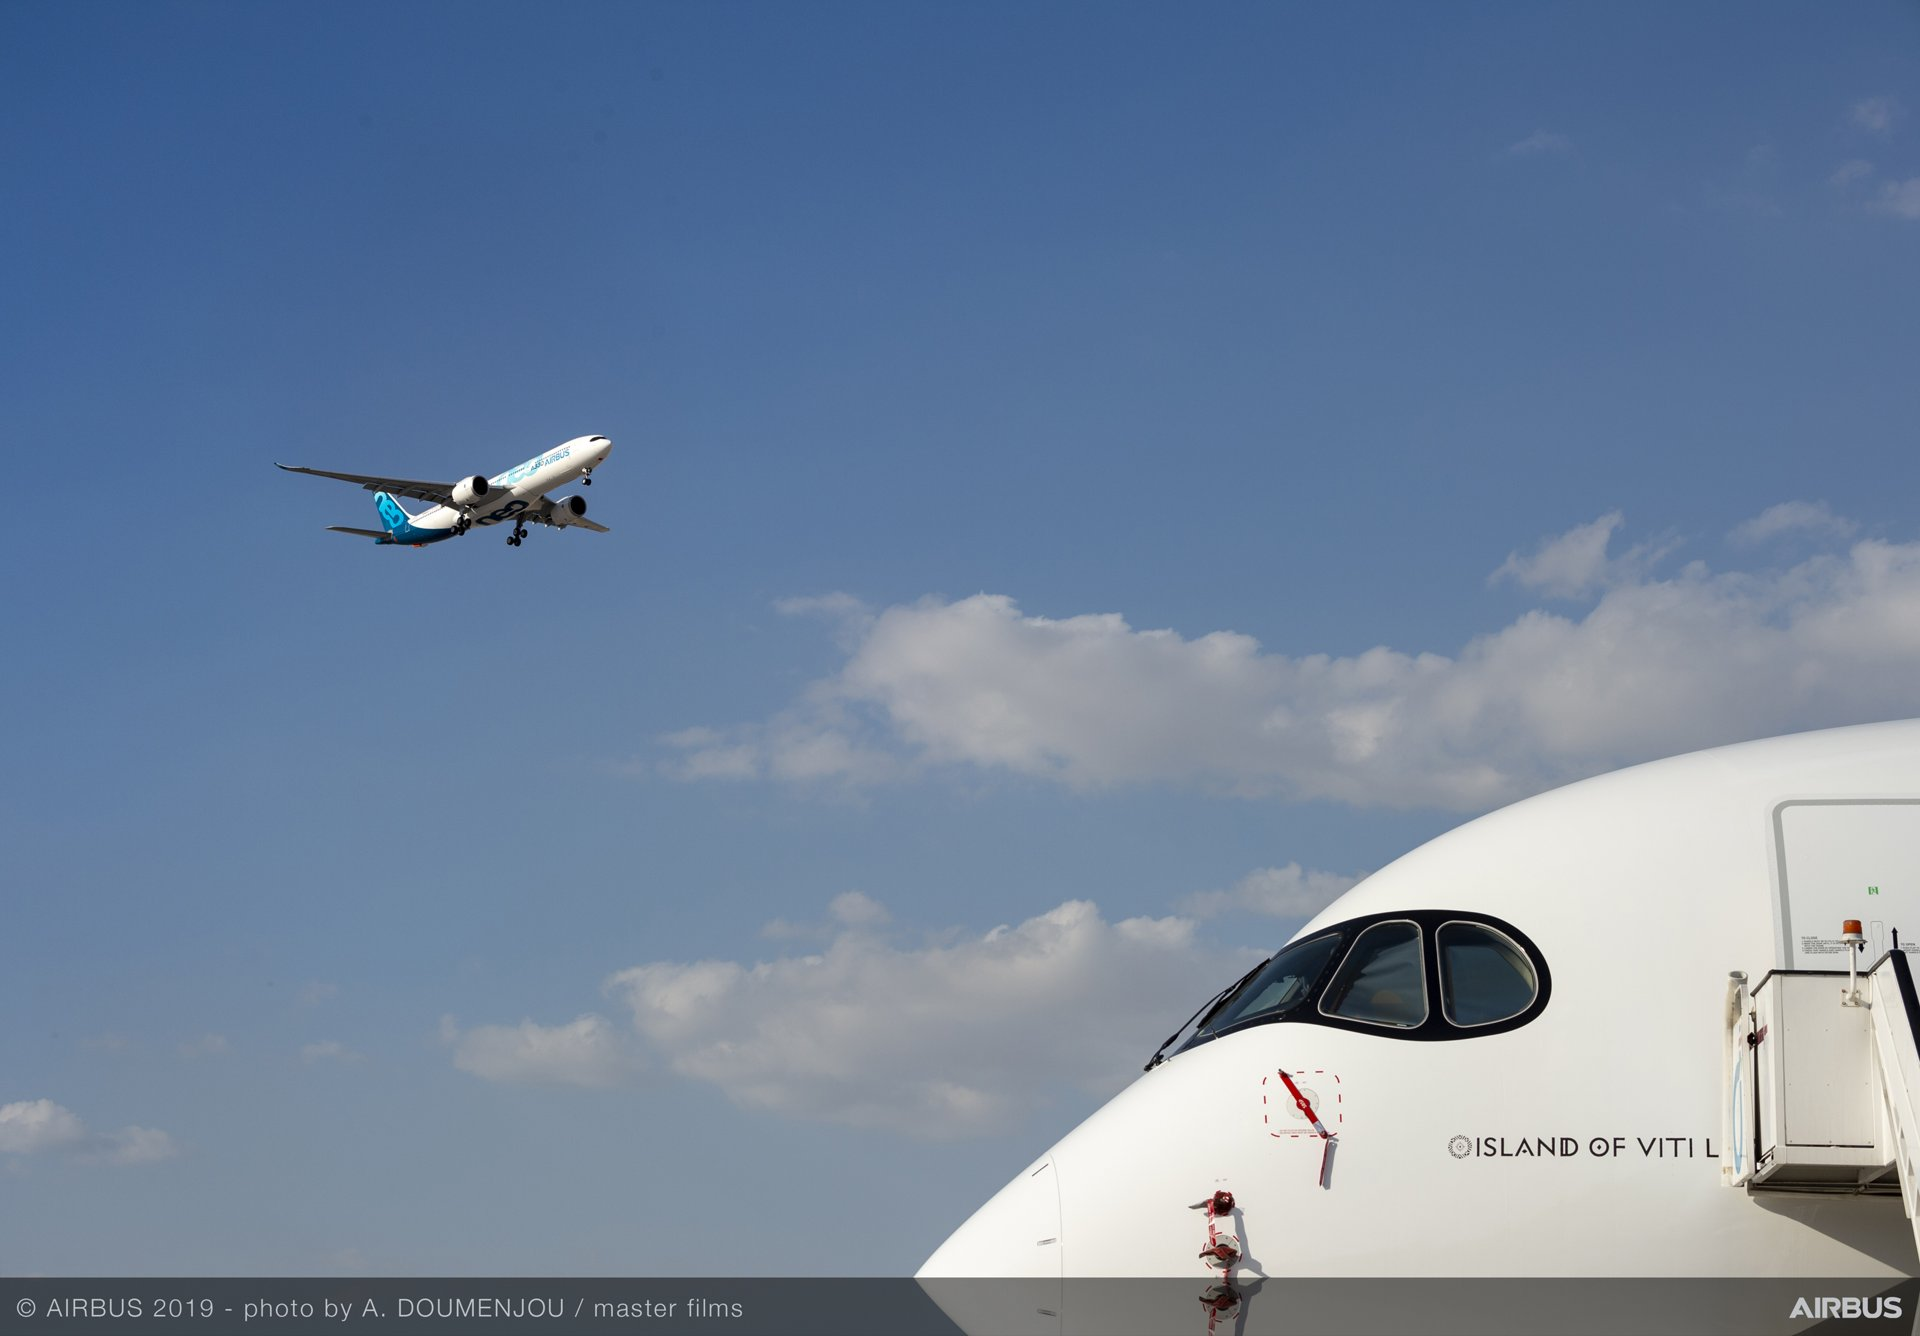 AG真人计划鈥� A330neo test aircraft showcases its excellent handling qualities during a flight demonstration at the Dubai Airshow, being held 17-21 November 2019 in the United Arab Emirates; Fiji Airways鈥� A350-900 is shown in the foreground